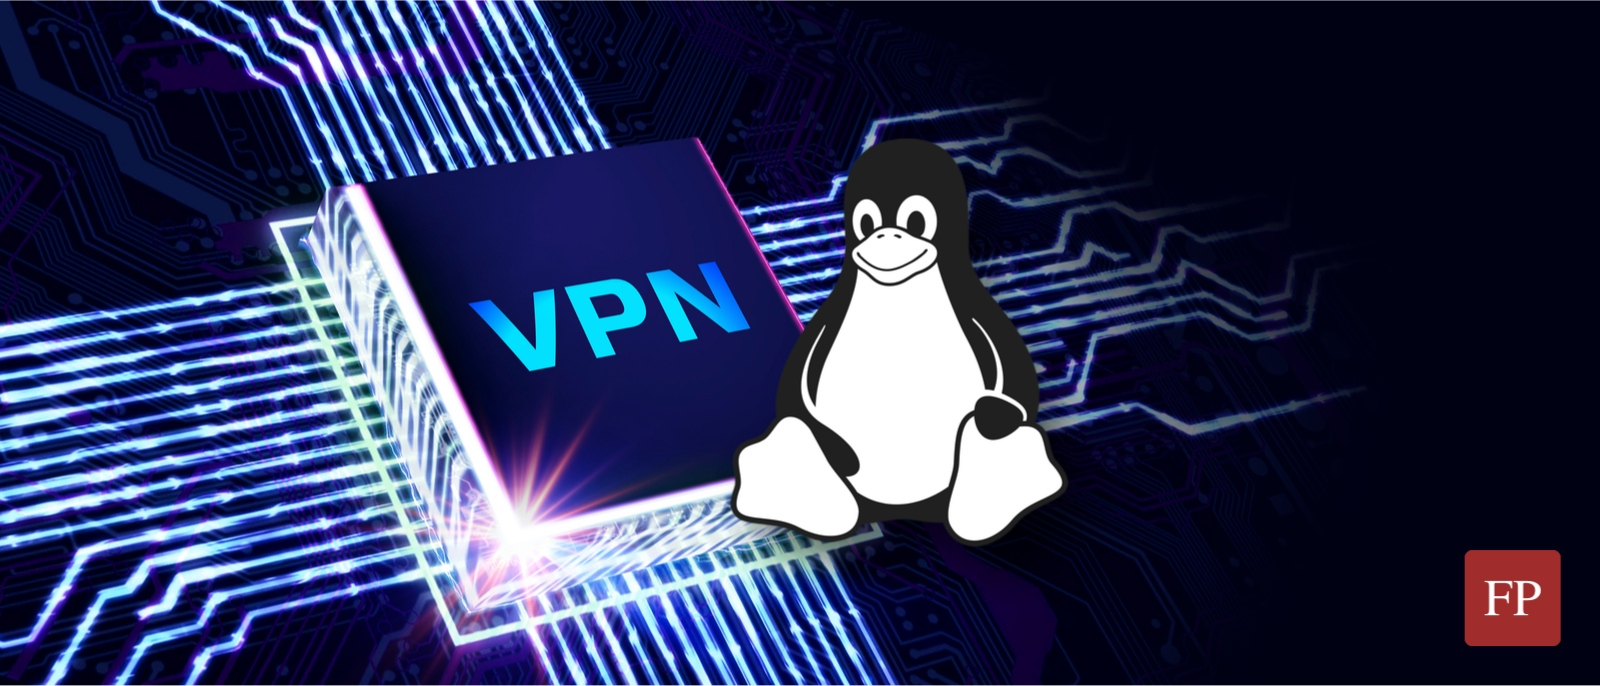 Linux VPN 3 September 13, 2020